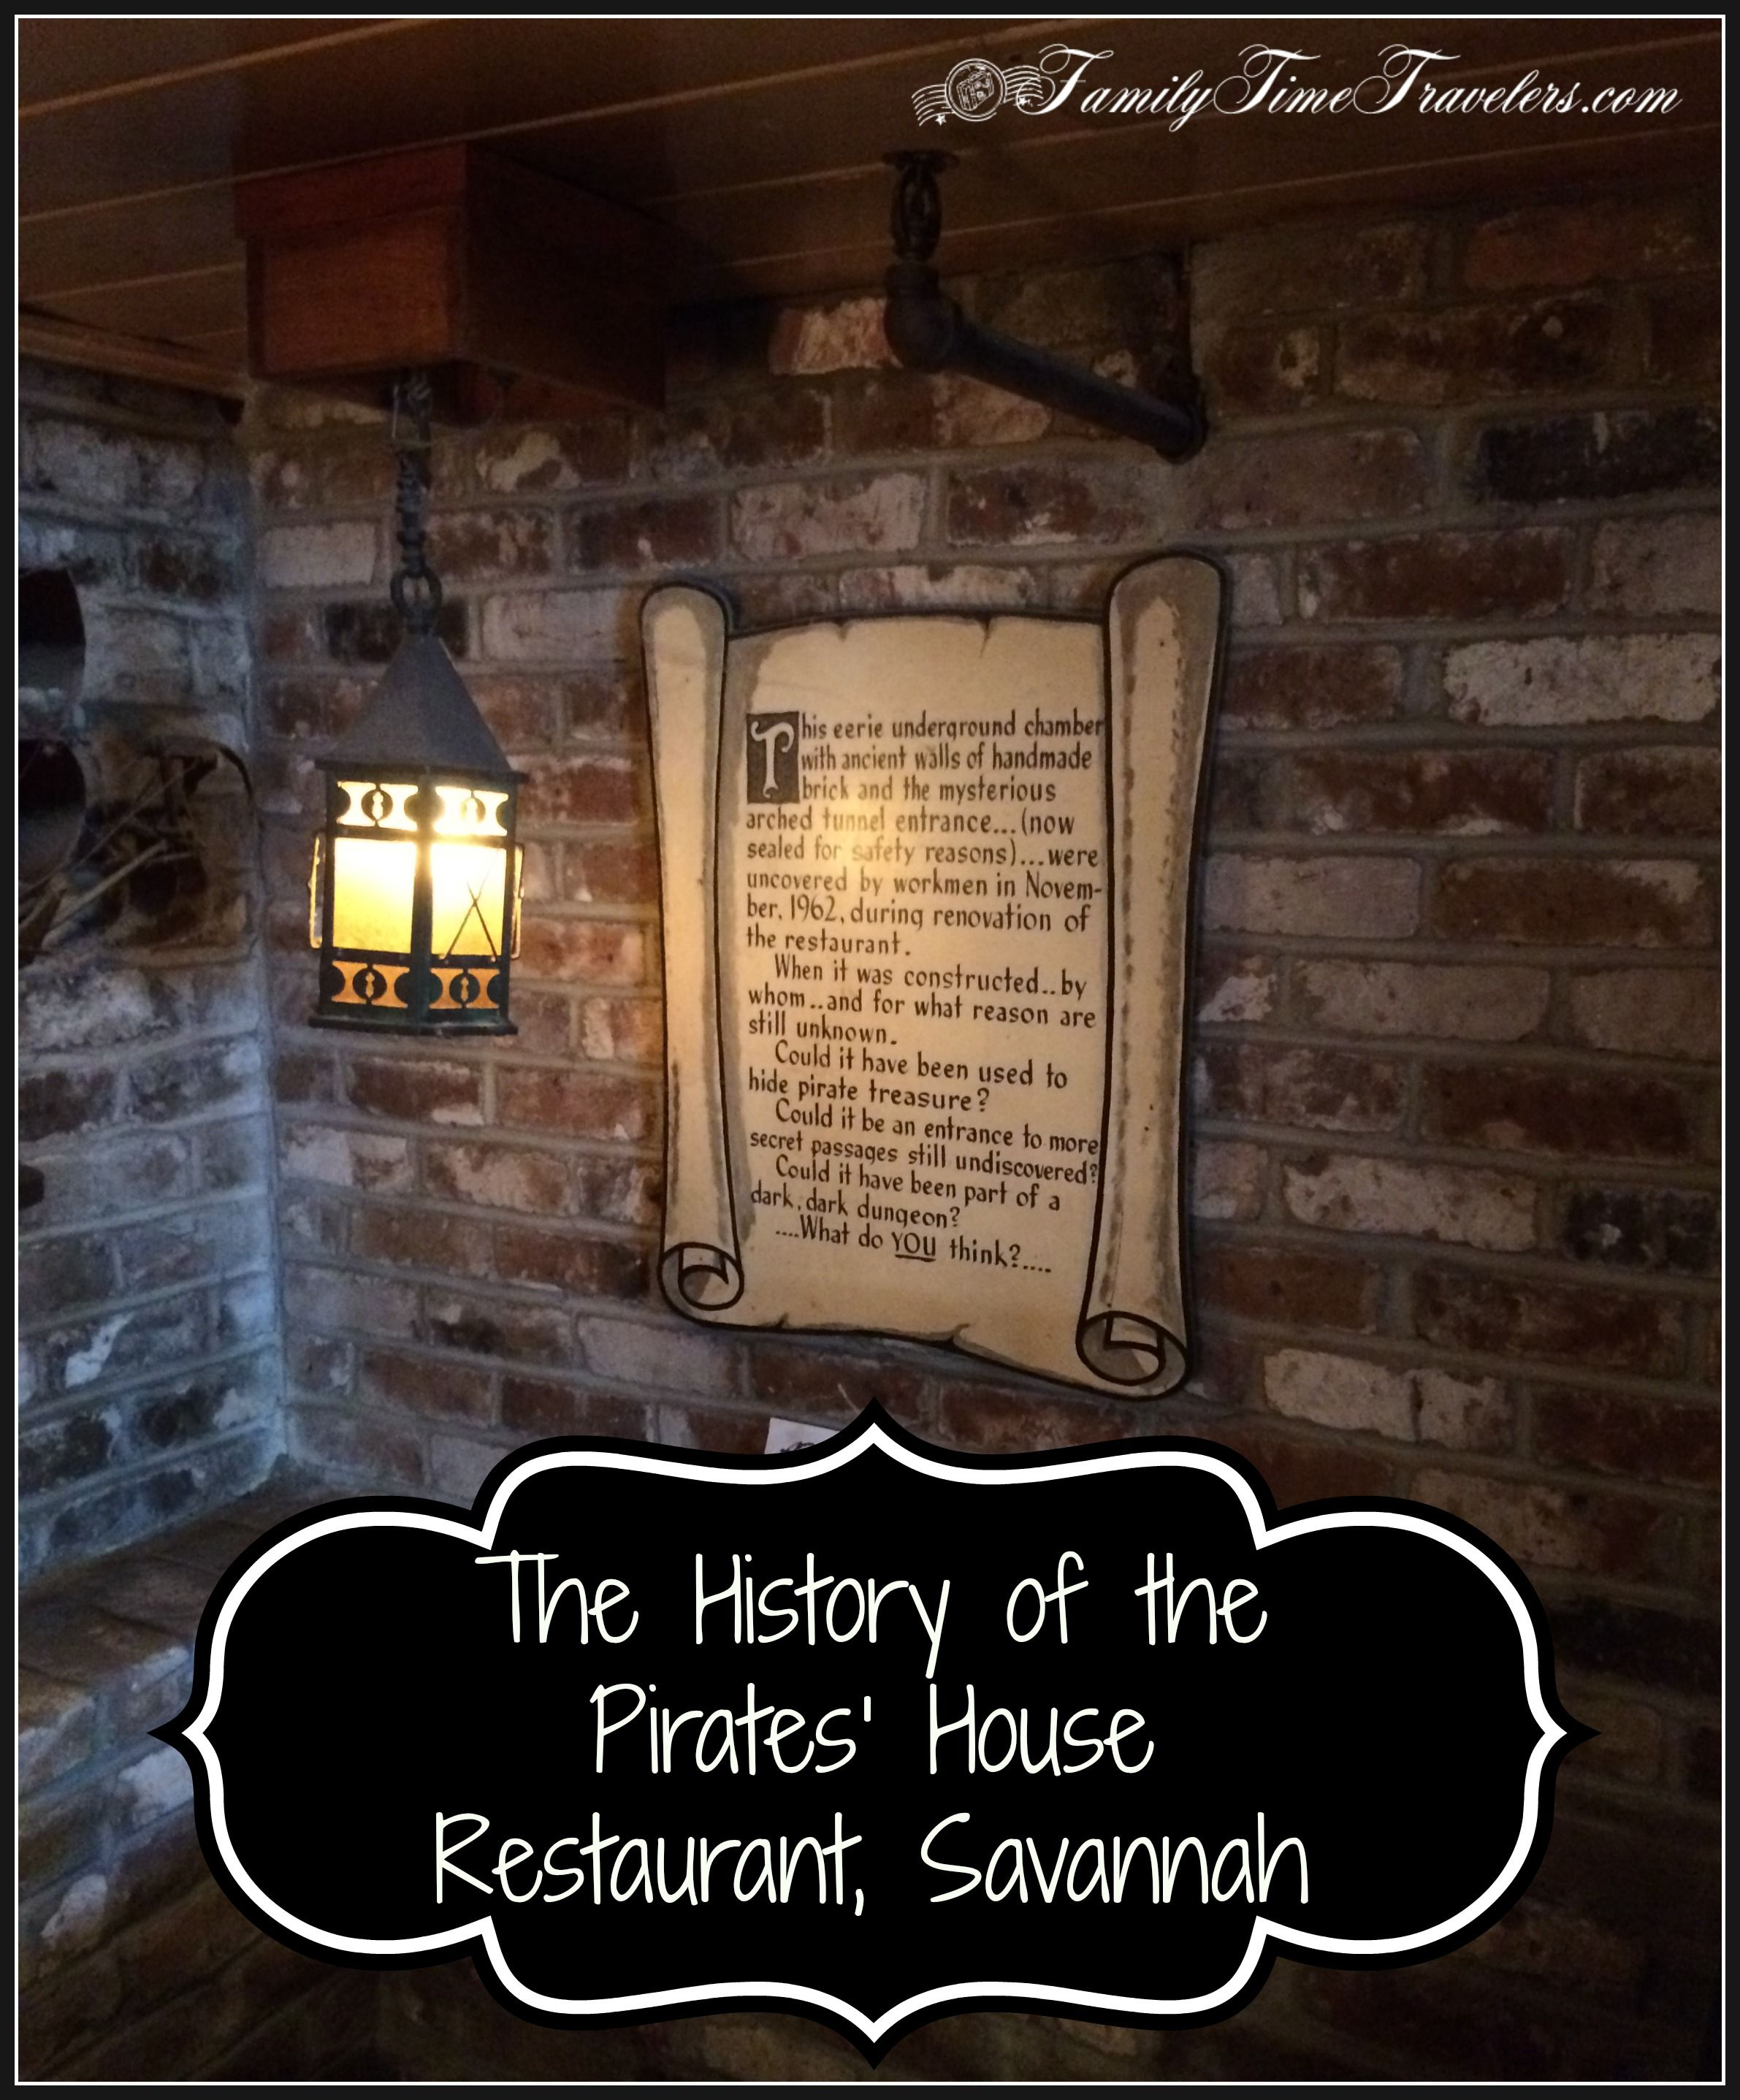 The history of the Pirates' House Restaurant in Savannah ...